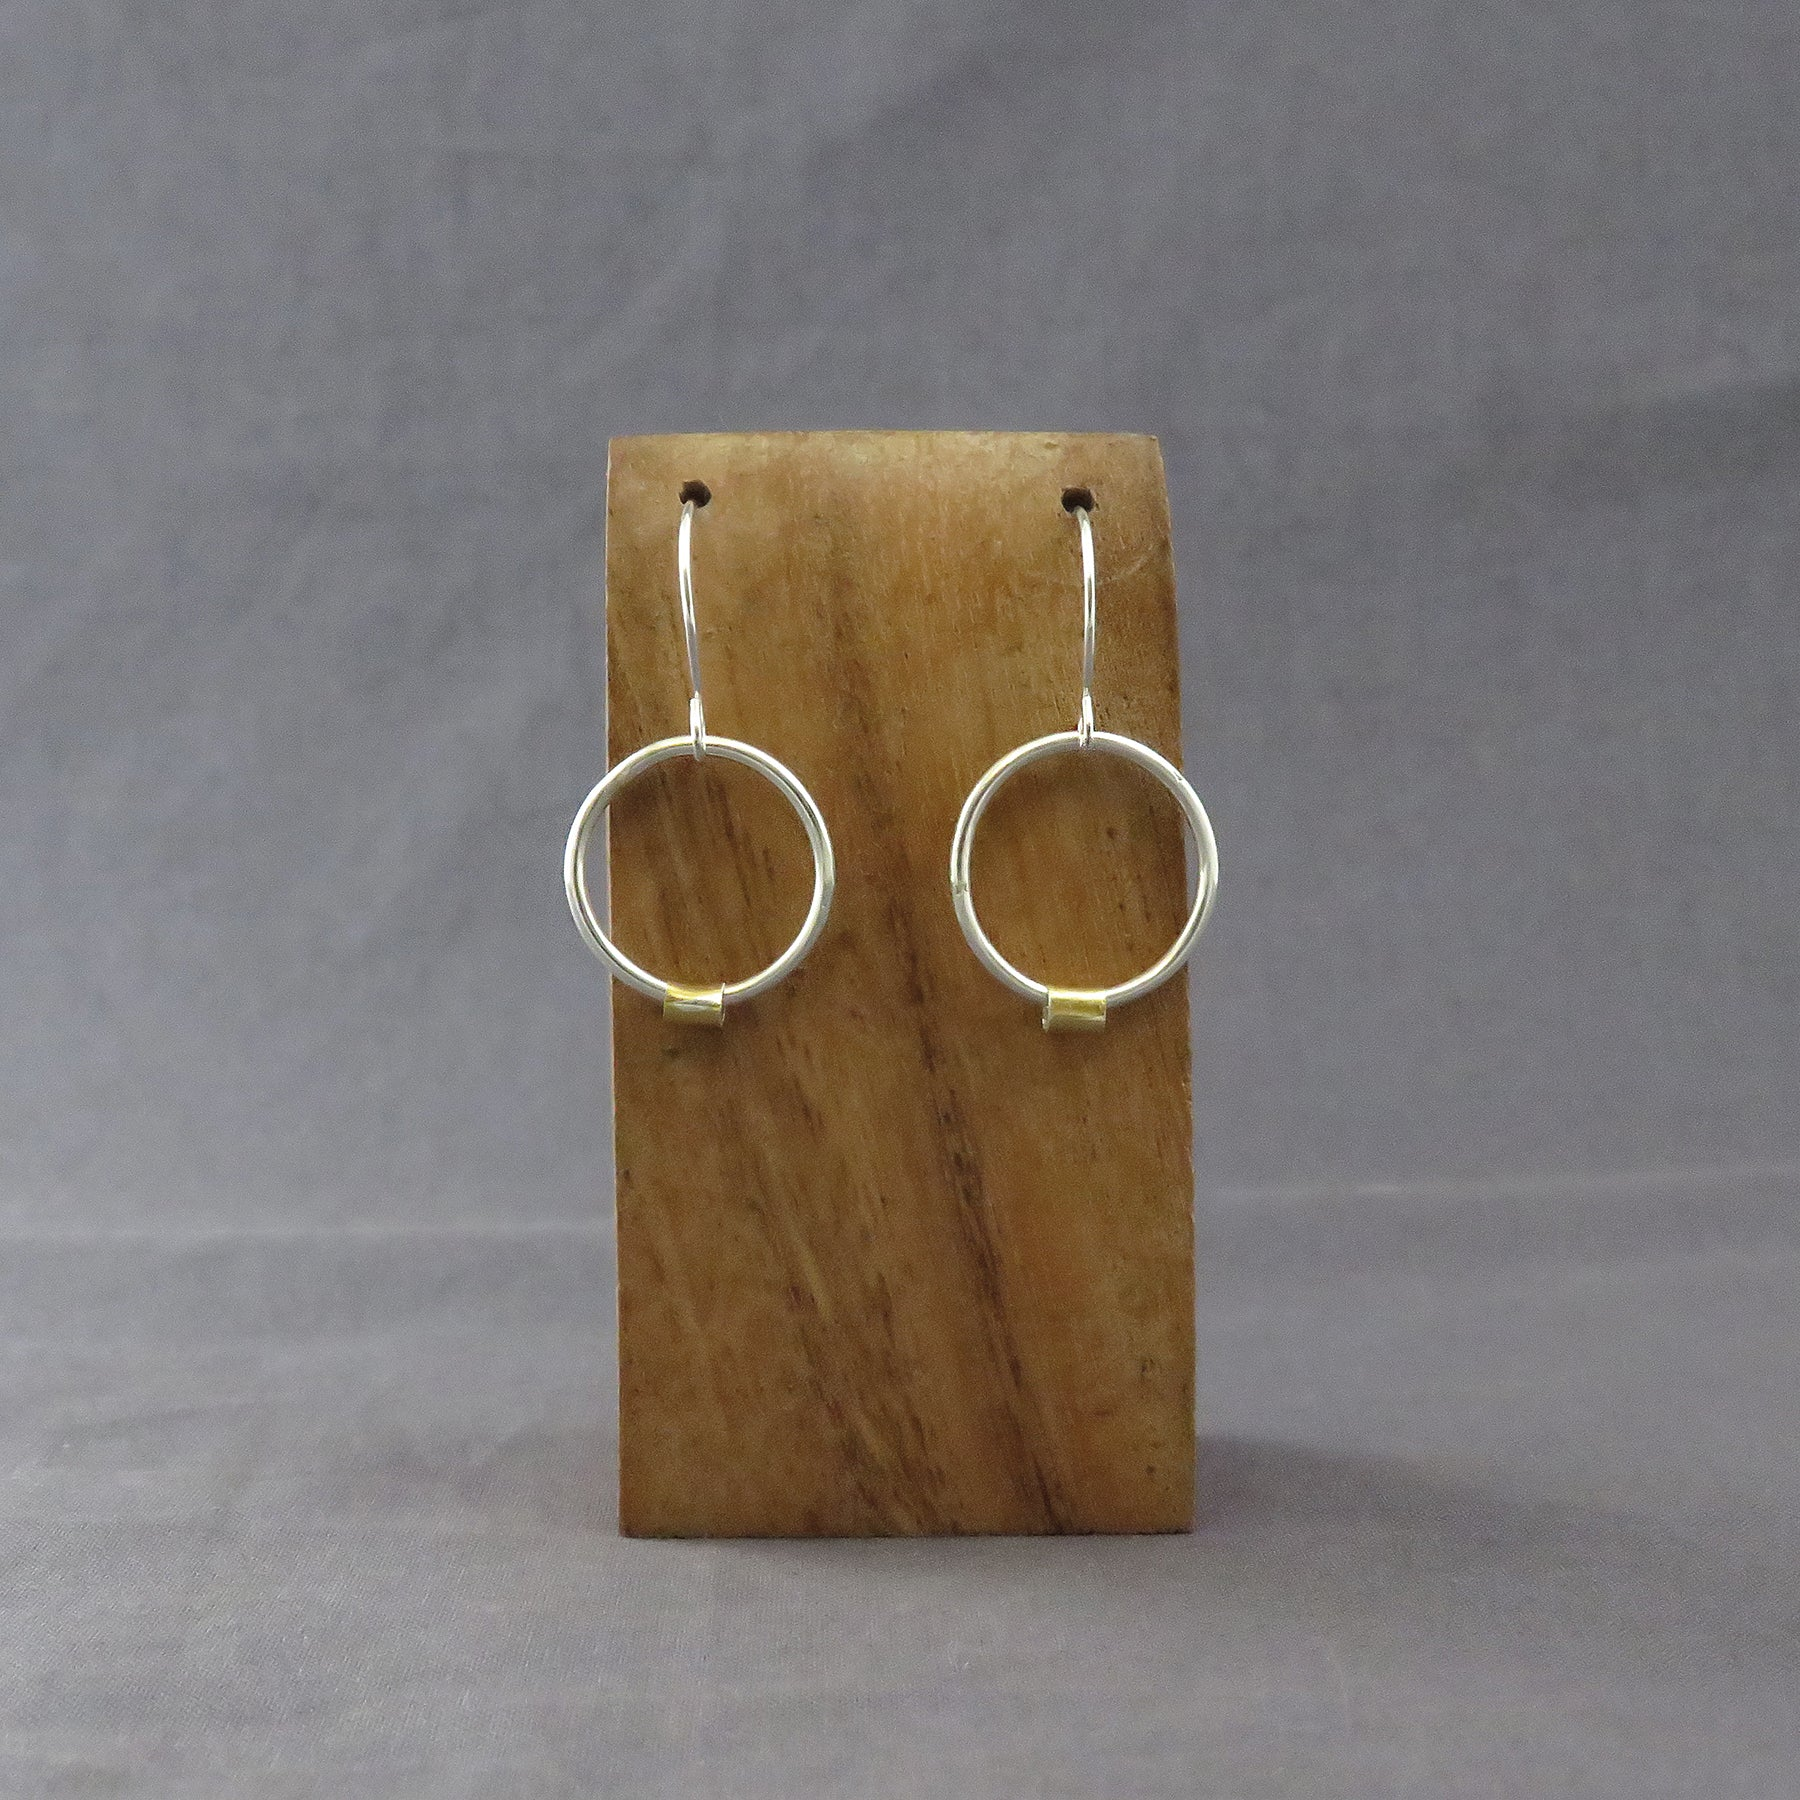 Silver Rings with Keum-boo Earrings, Round